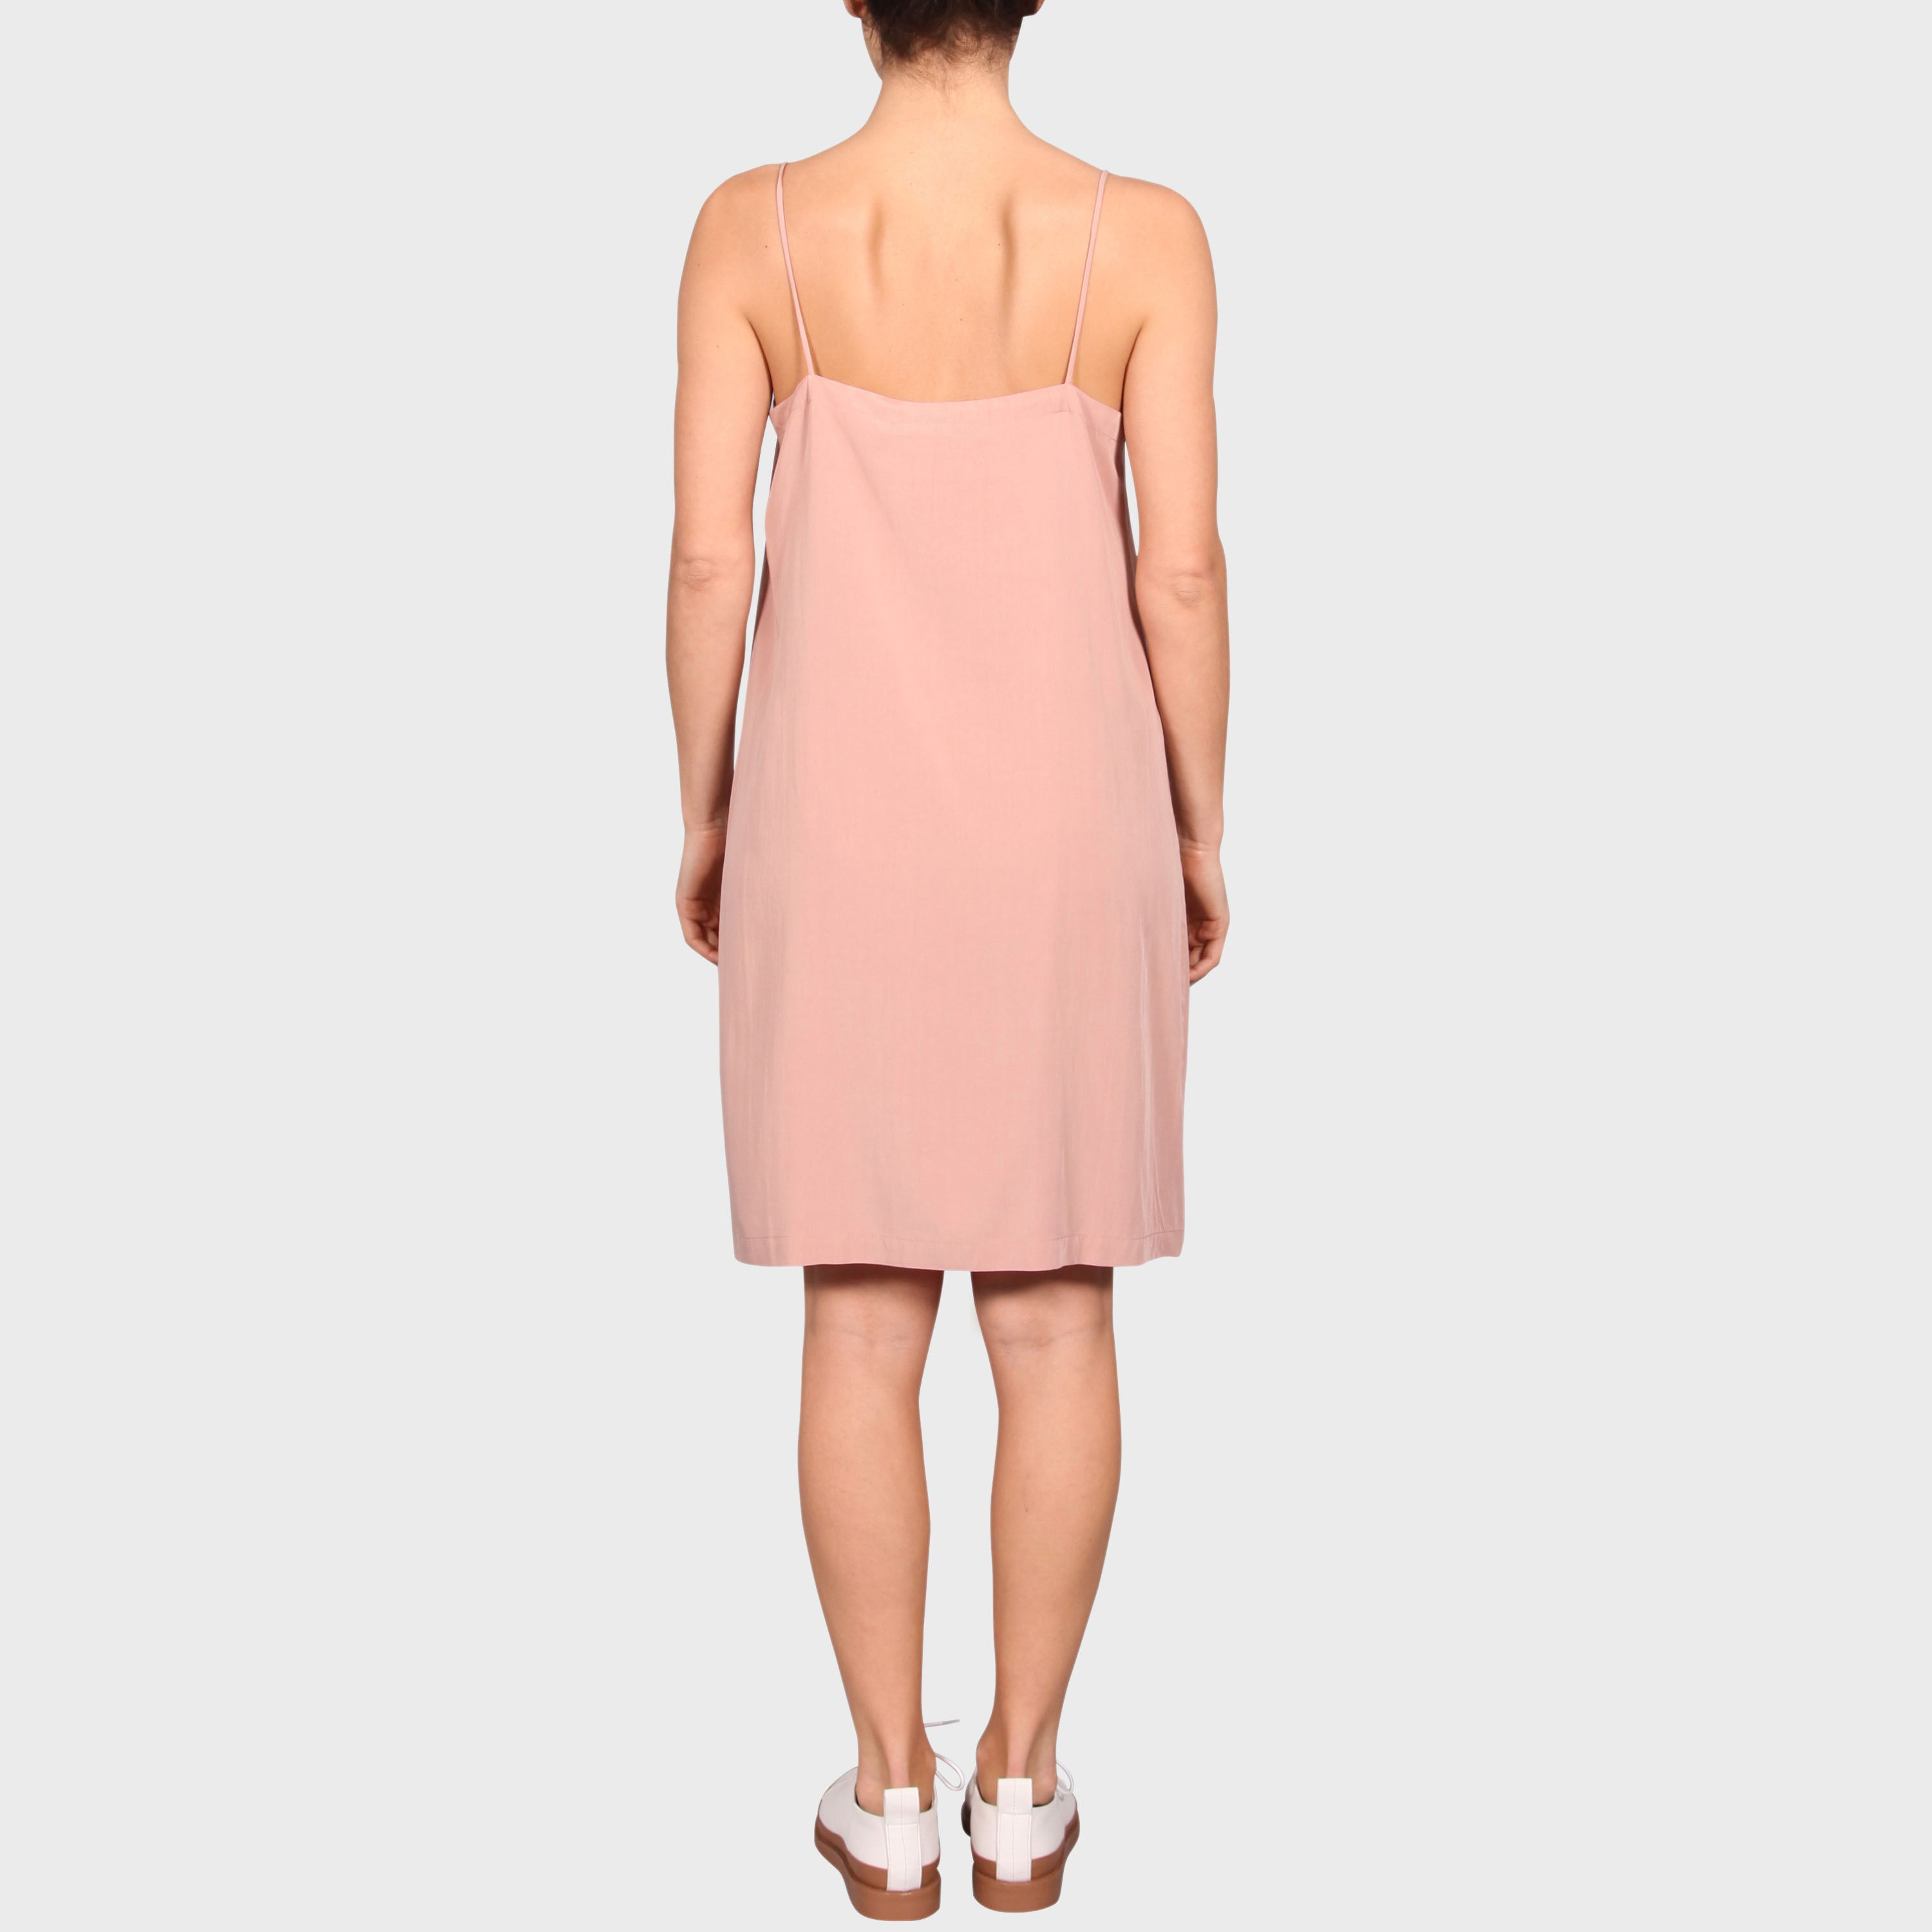 RACHEL SLIP DRESS / BLUSH